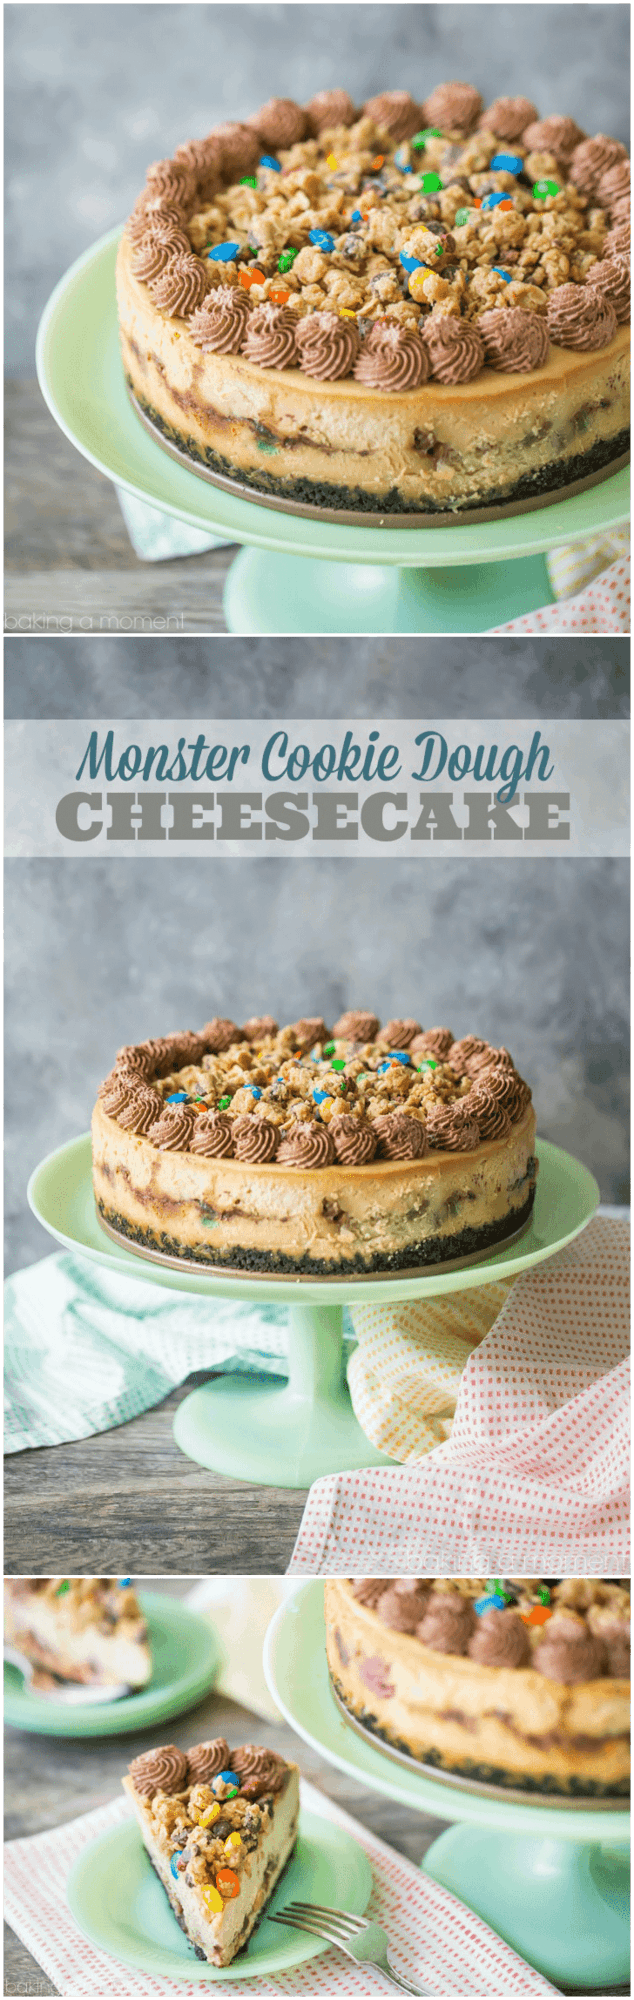 Monster Cookie Dough Cheesecake: OMG this dessert is completely over-the-top! Peanut butter cheesecake with hunks of peanut butter oatmeal m&m cookie dough, on an Oreo cookie crust, with more cookie dough on top and swirls of chocolate whipped cream. Such an incredible indulgence! food desserts cheesecake